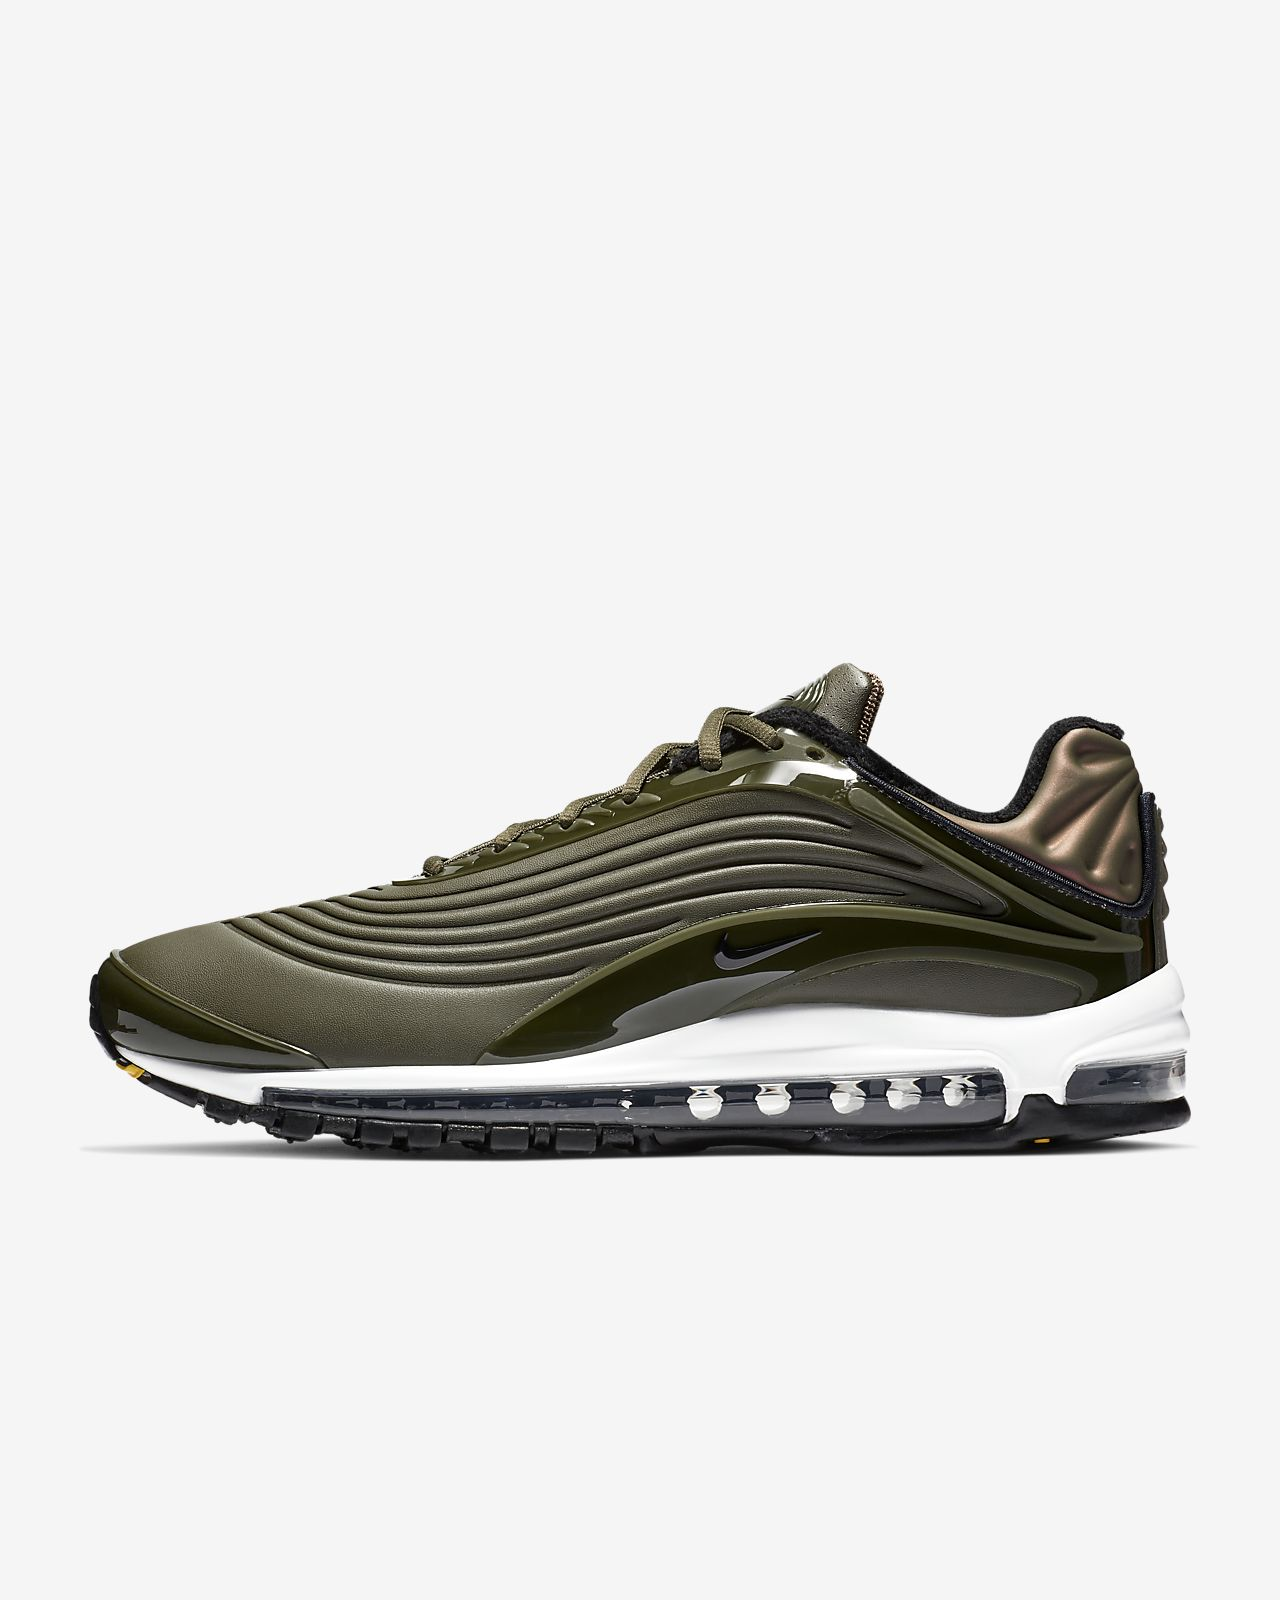 cheap for discount 33512 7f4f4 ... Nike Air Max Deluxe SE Men s Shoe